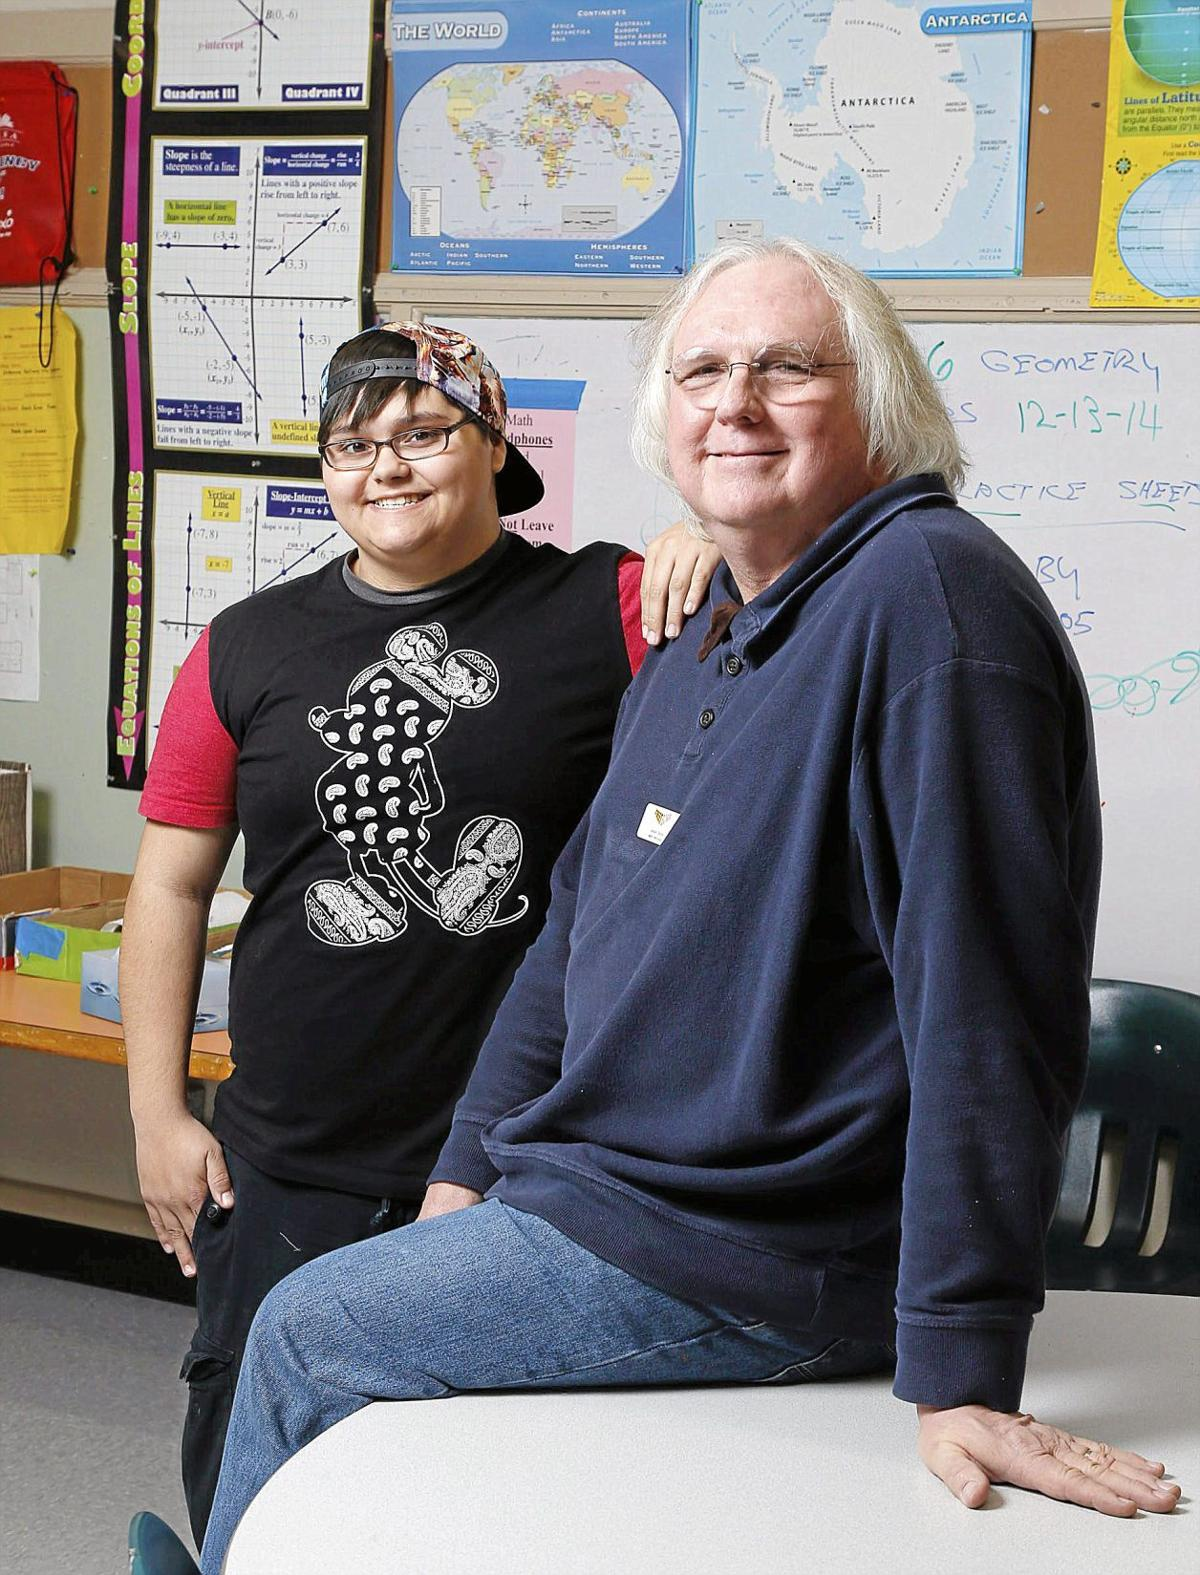 Helping At Risk Students Address >> Unsung Heroes Street School Teacher Cuts No Corners In Helping His